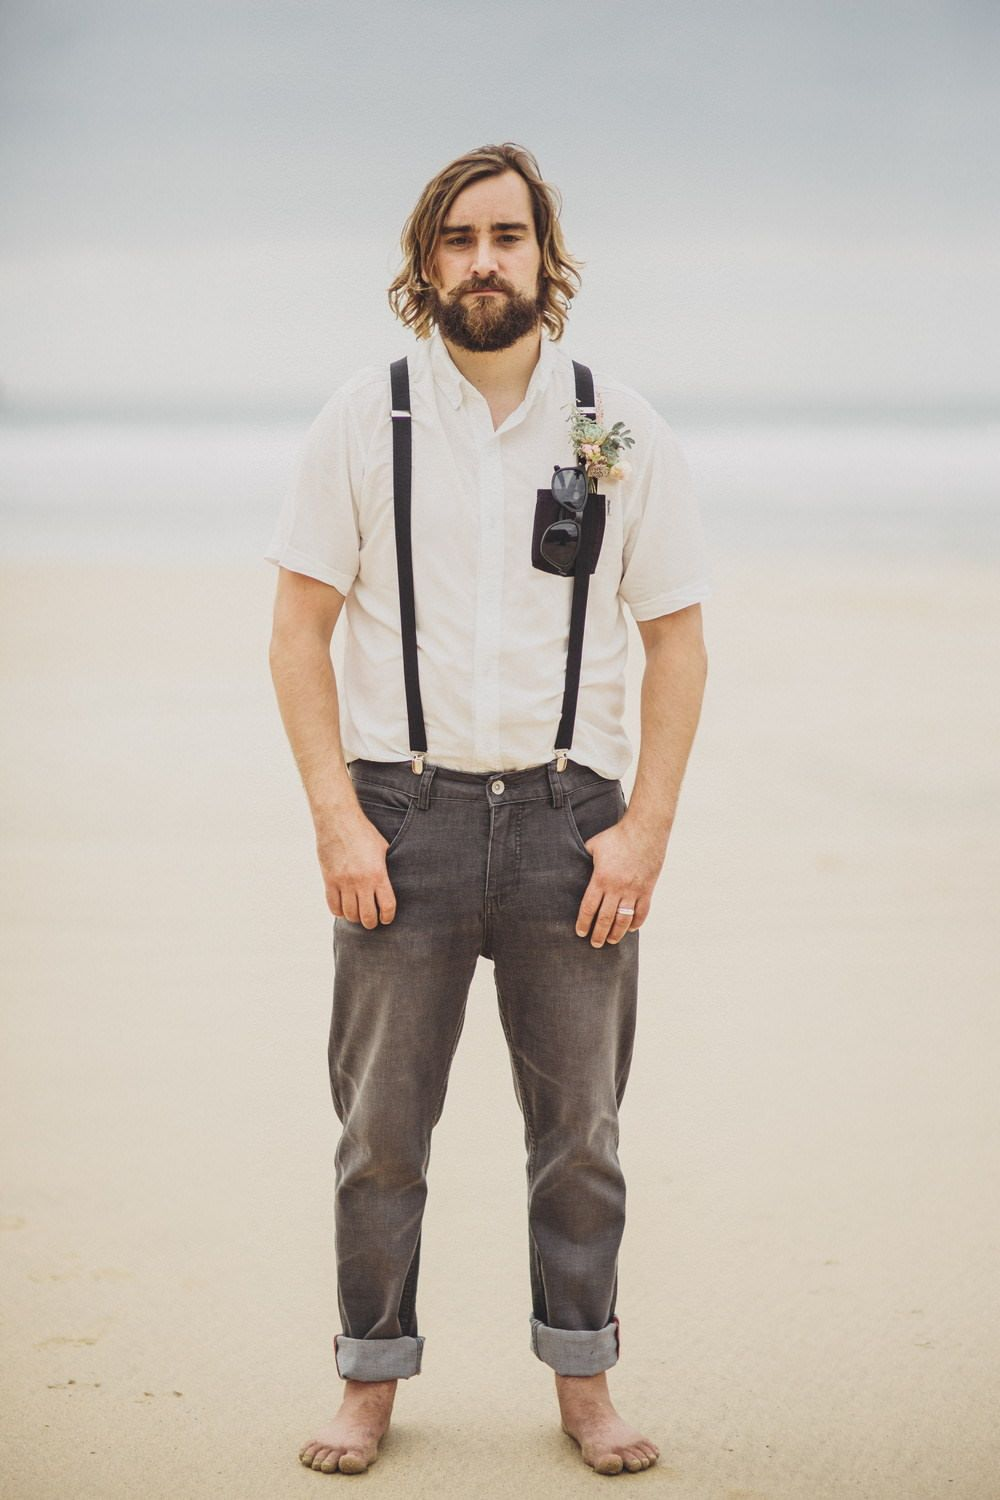 Bohemian wedding dress from grace loves lace at a laid back coastal